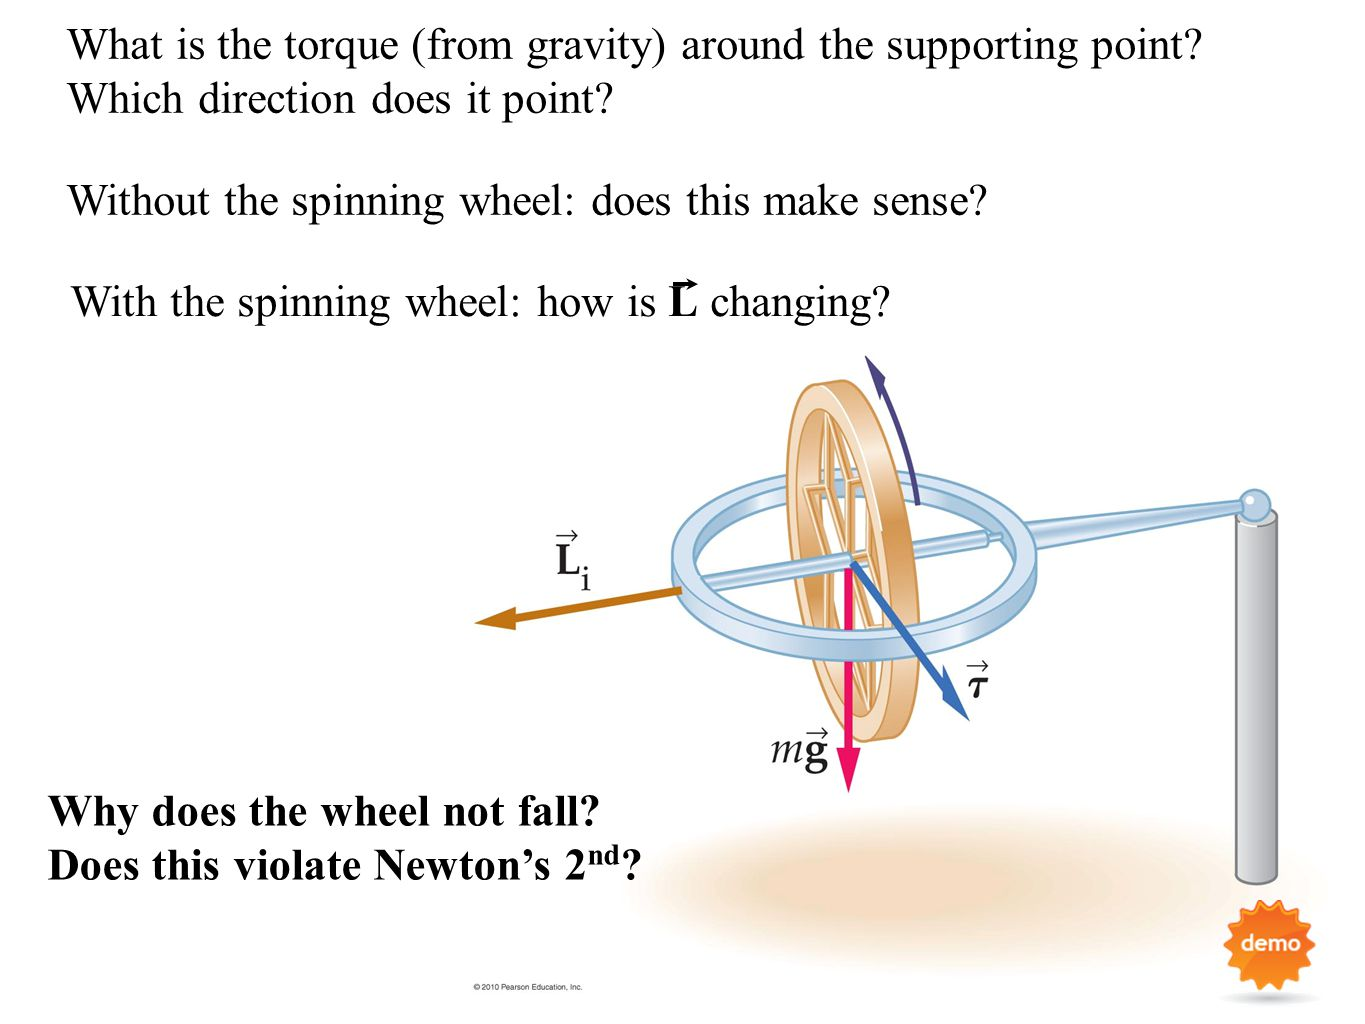 What is the torque (from gravity) around the supporting point